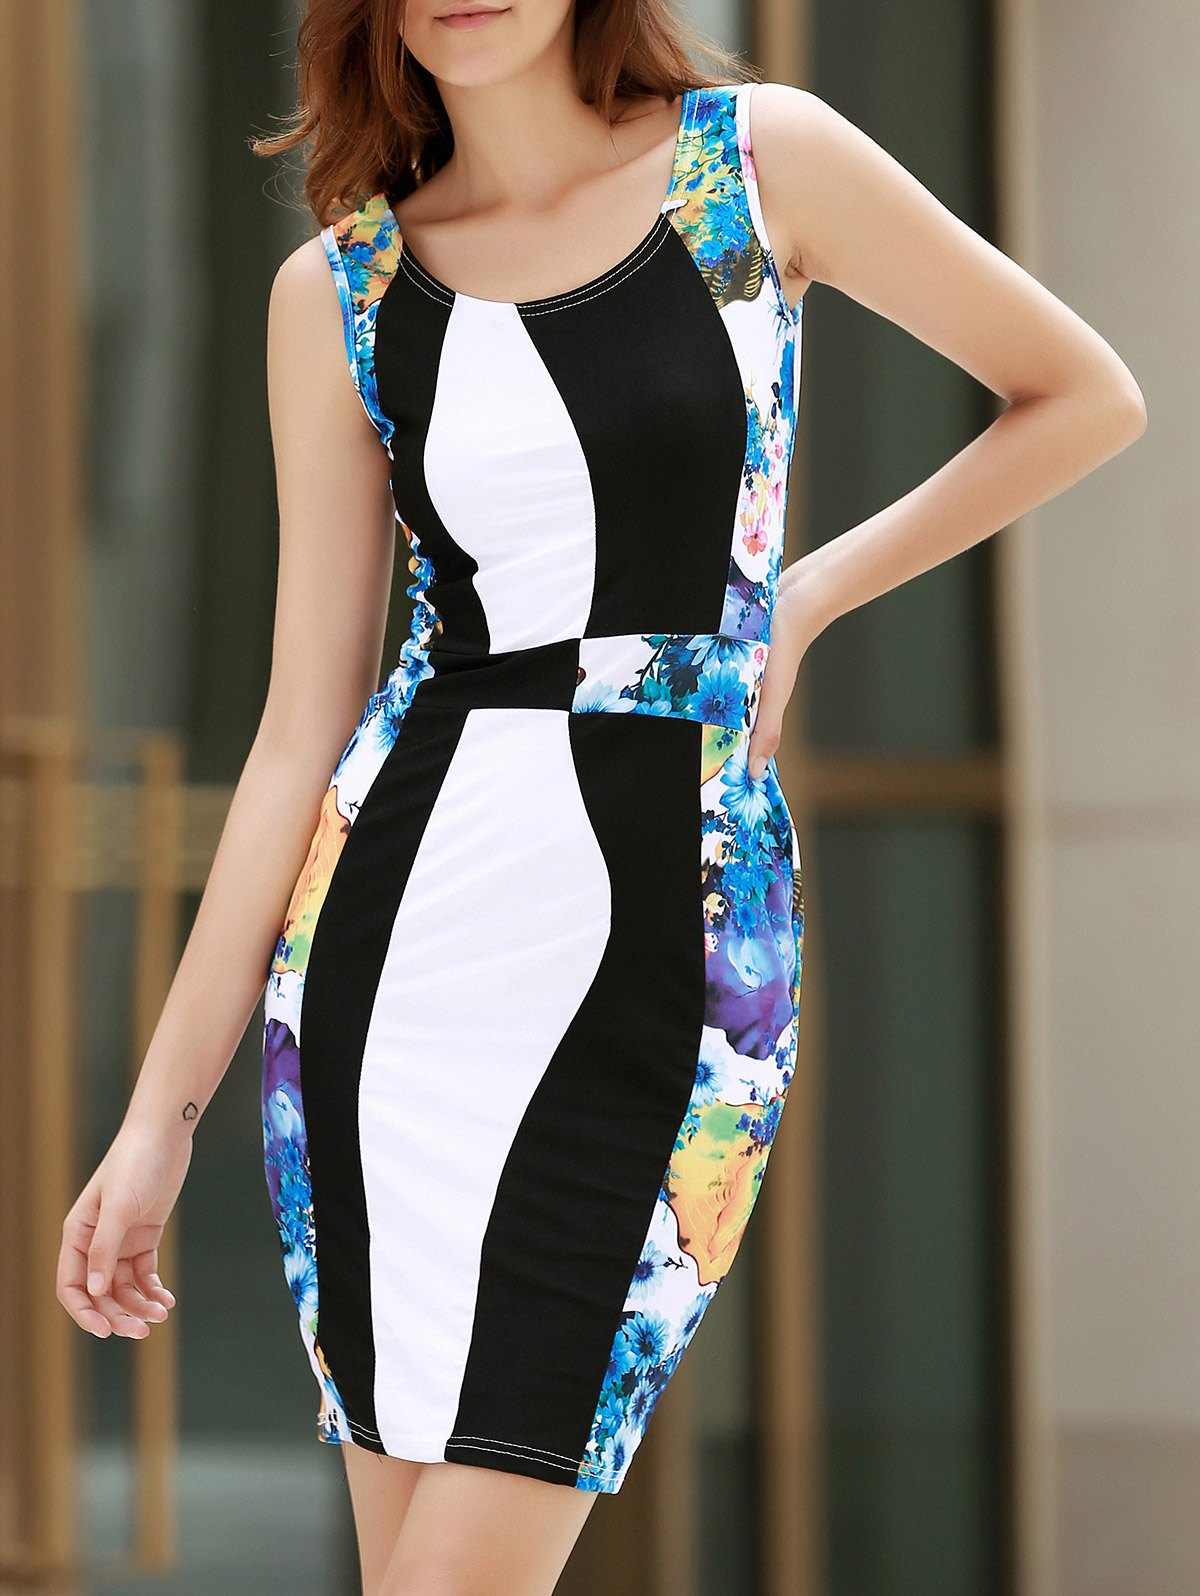 Scoop Neck Sleeveless Floral Print Slimming Women's Dress - COLORMIX S